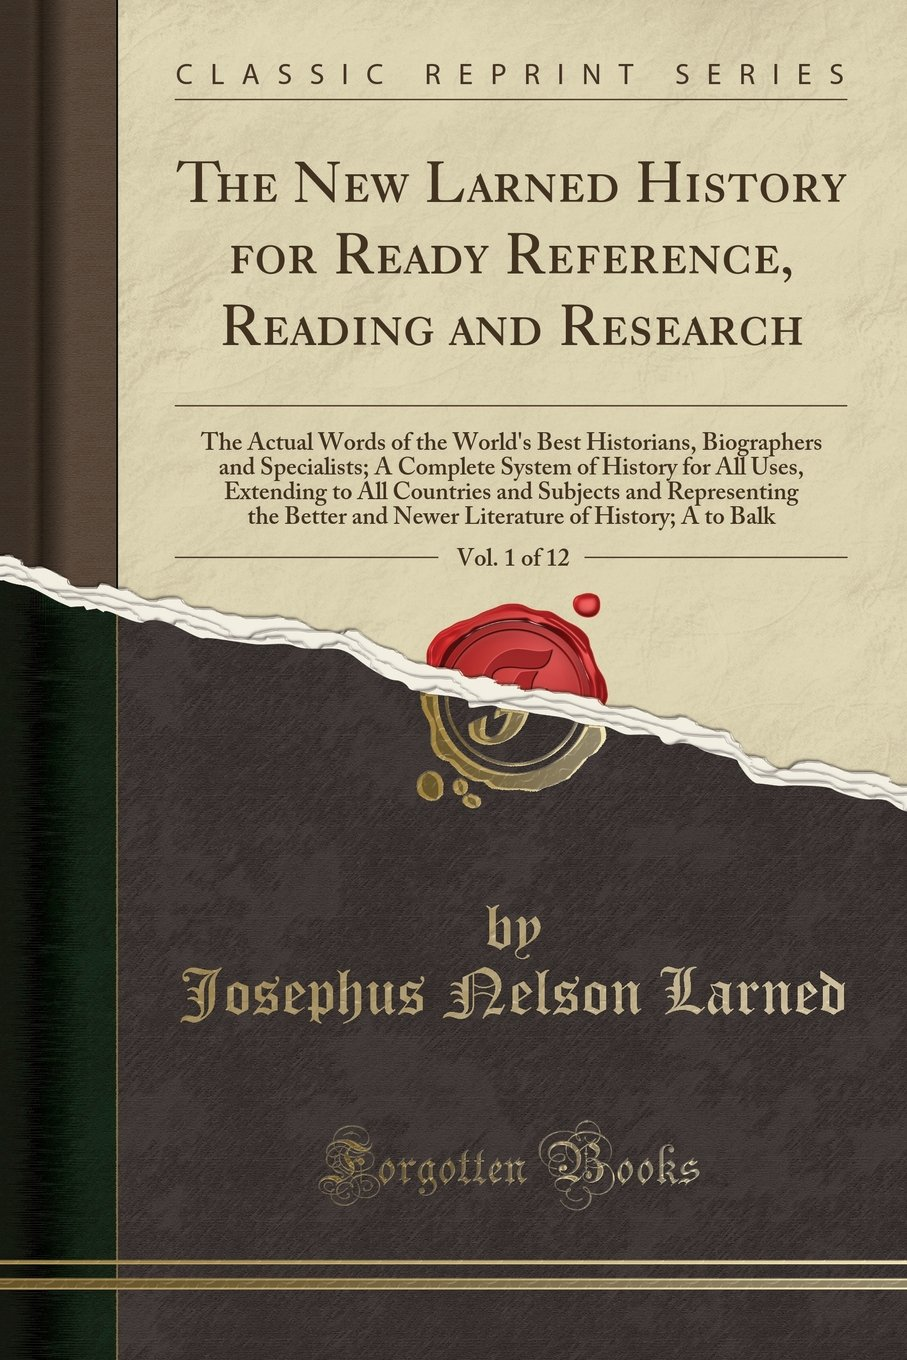 Read Online The New Larned History for Ready Reference, Reading and Research, Vol. 1 of 12: The Actual Words of the World's Best Historians, Biographers and ... to All Countries and Subjects and Representi ebook